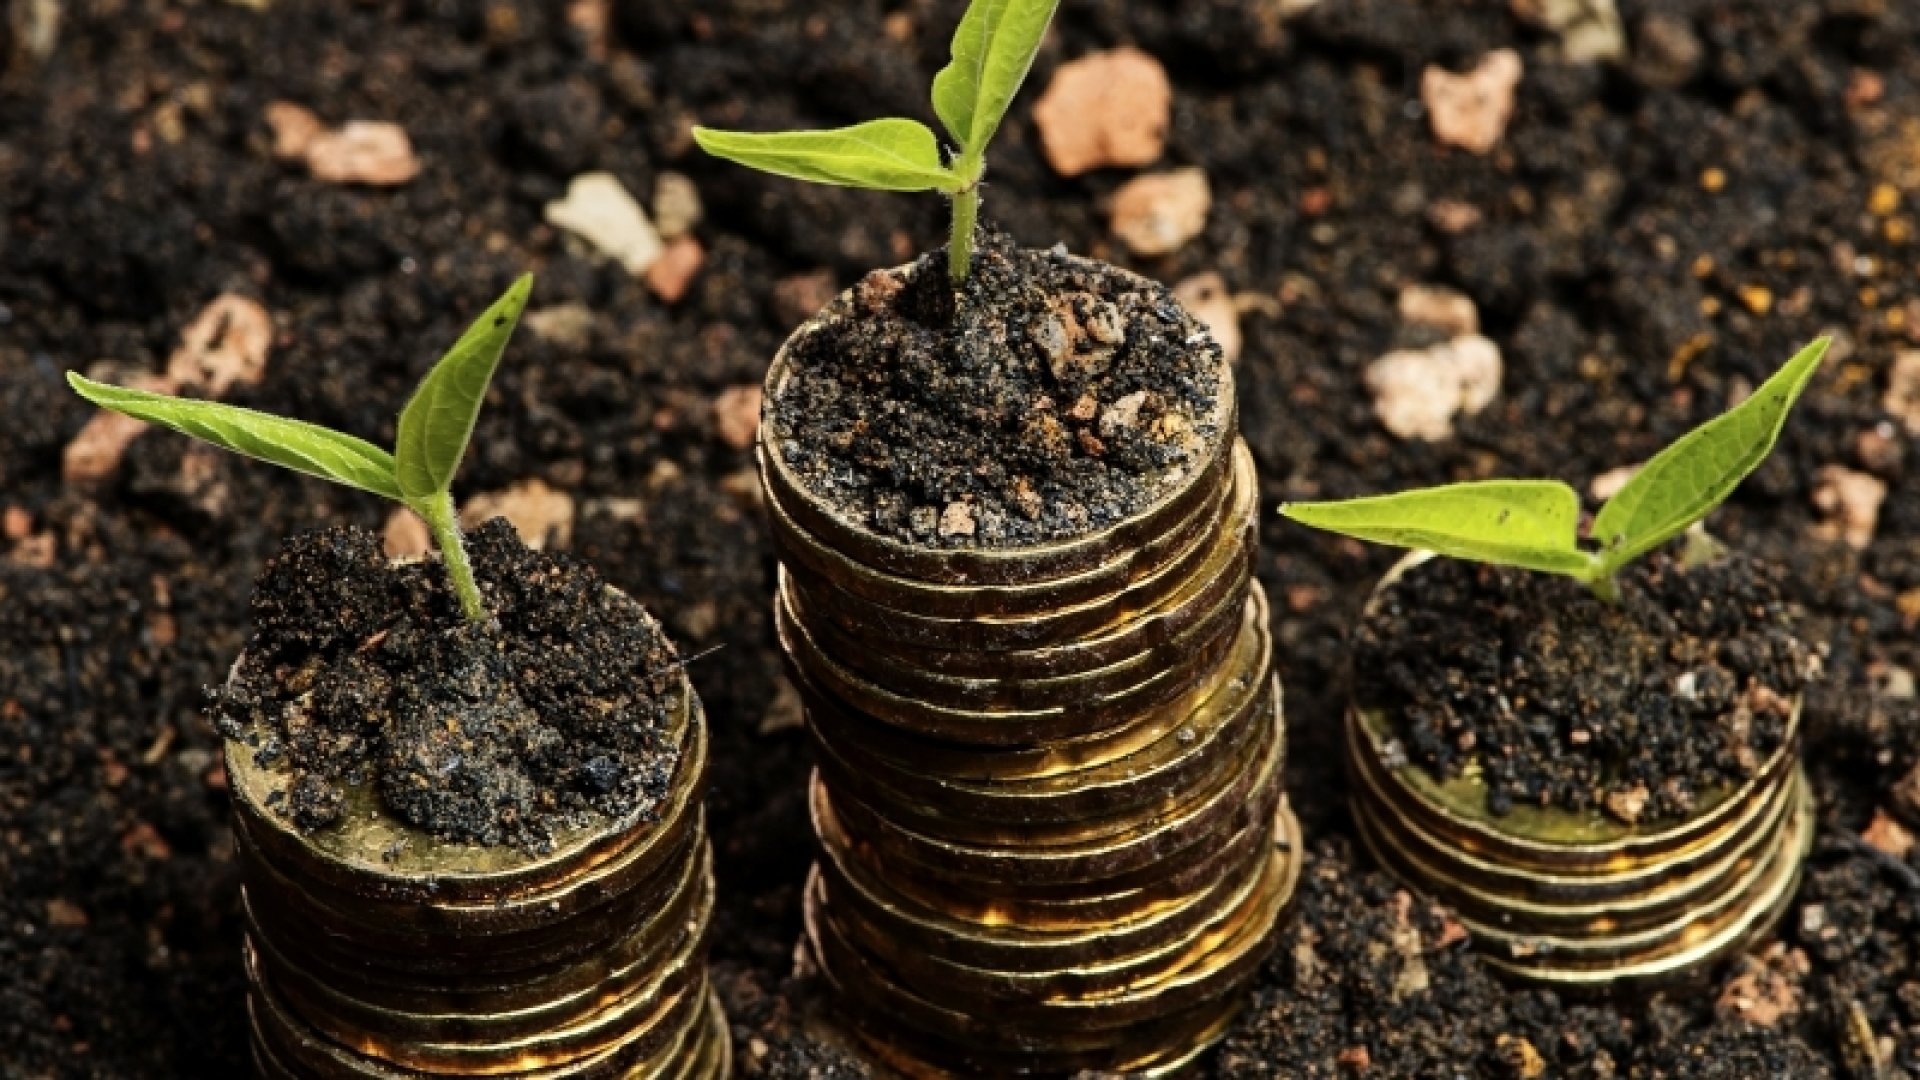 5 of the Most Impressive Seed Funding Wins of the Past Five Years